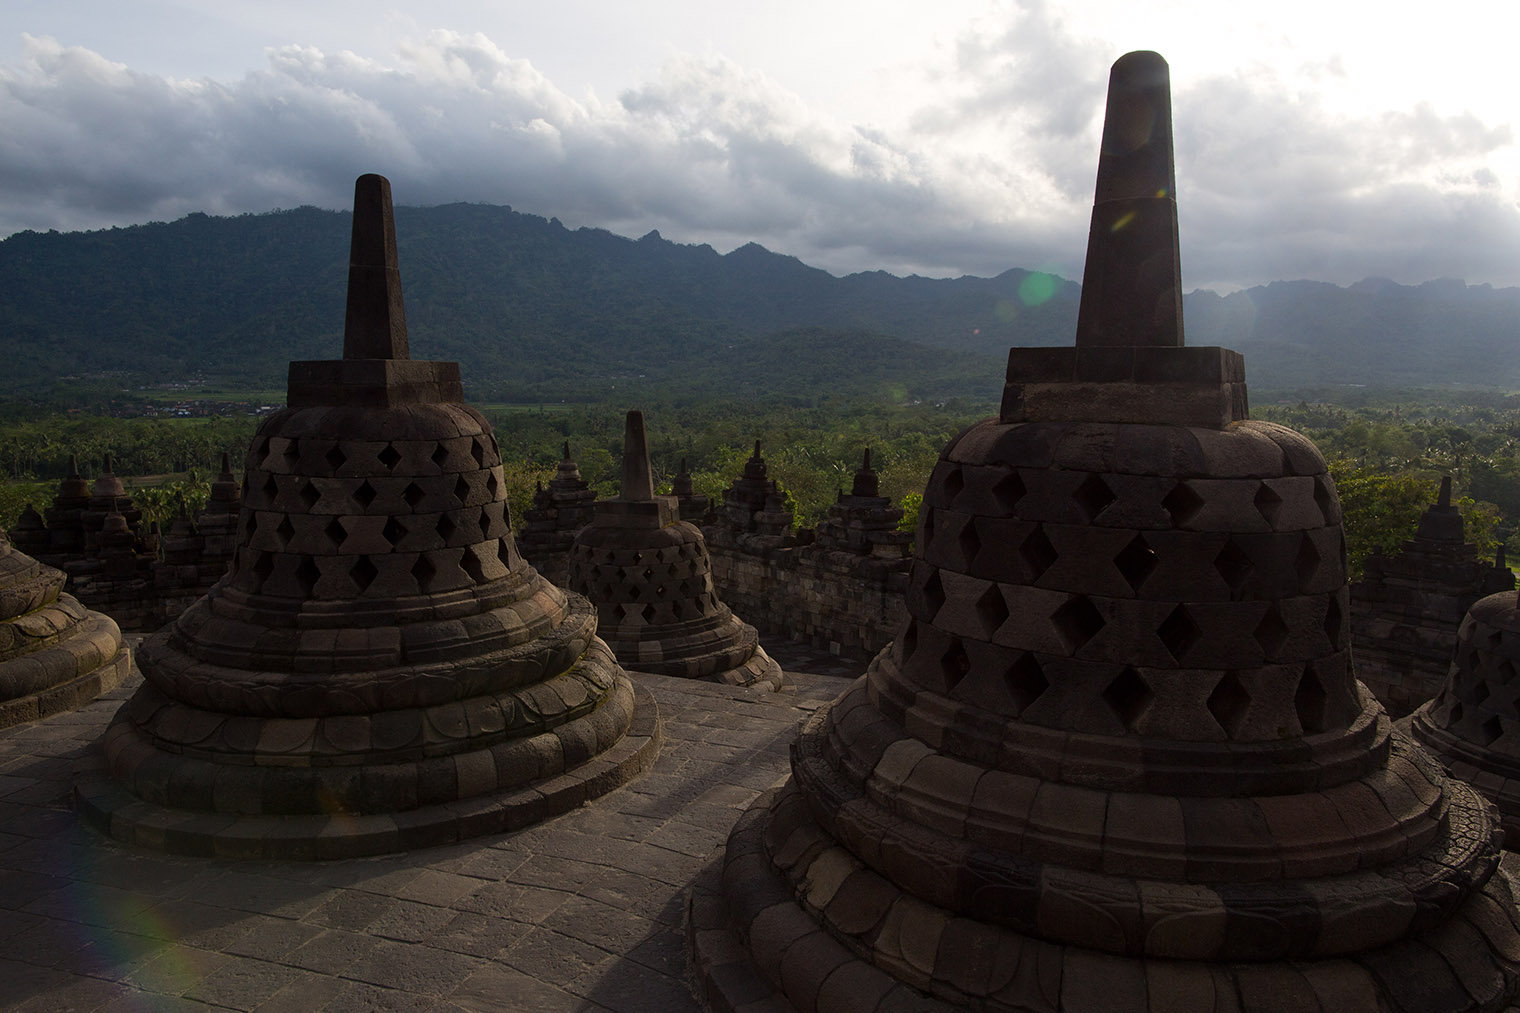 Favorite Travel Images from South East Asia